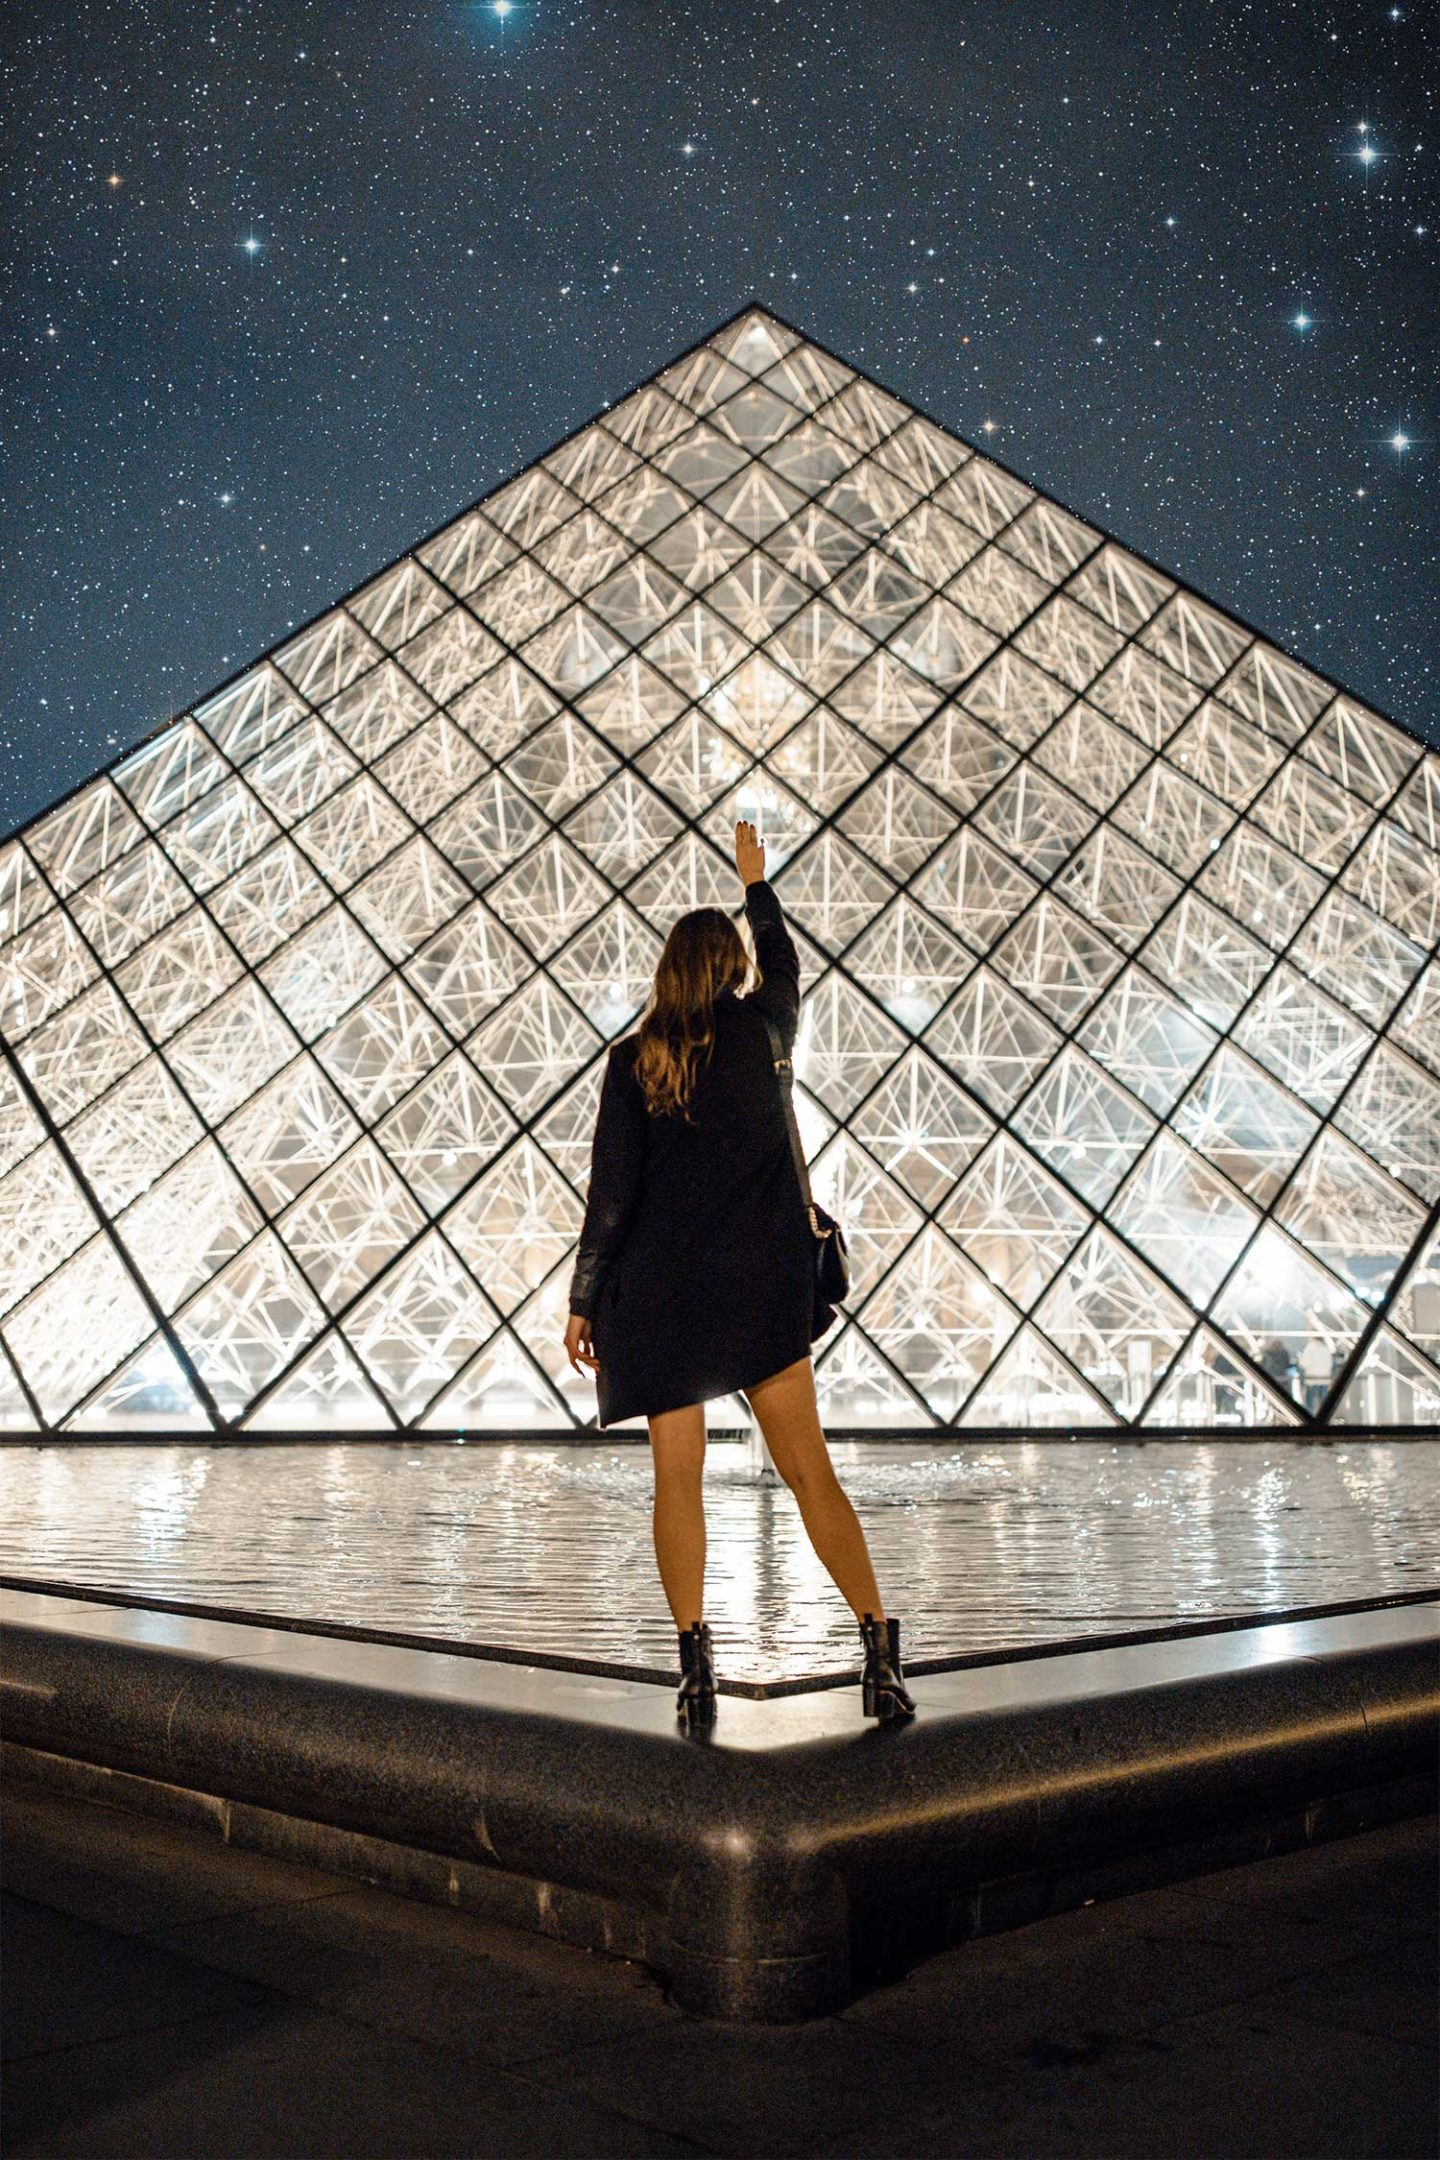 I will show you how to add Stars fast and easy. Photoshop Tutorial under 5 simple steps! Perfect for adding stars to your Instagram photos. Photoshop tutorial for beginners. Paris night photography